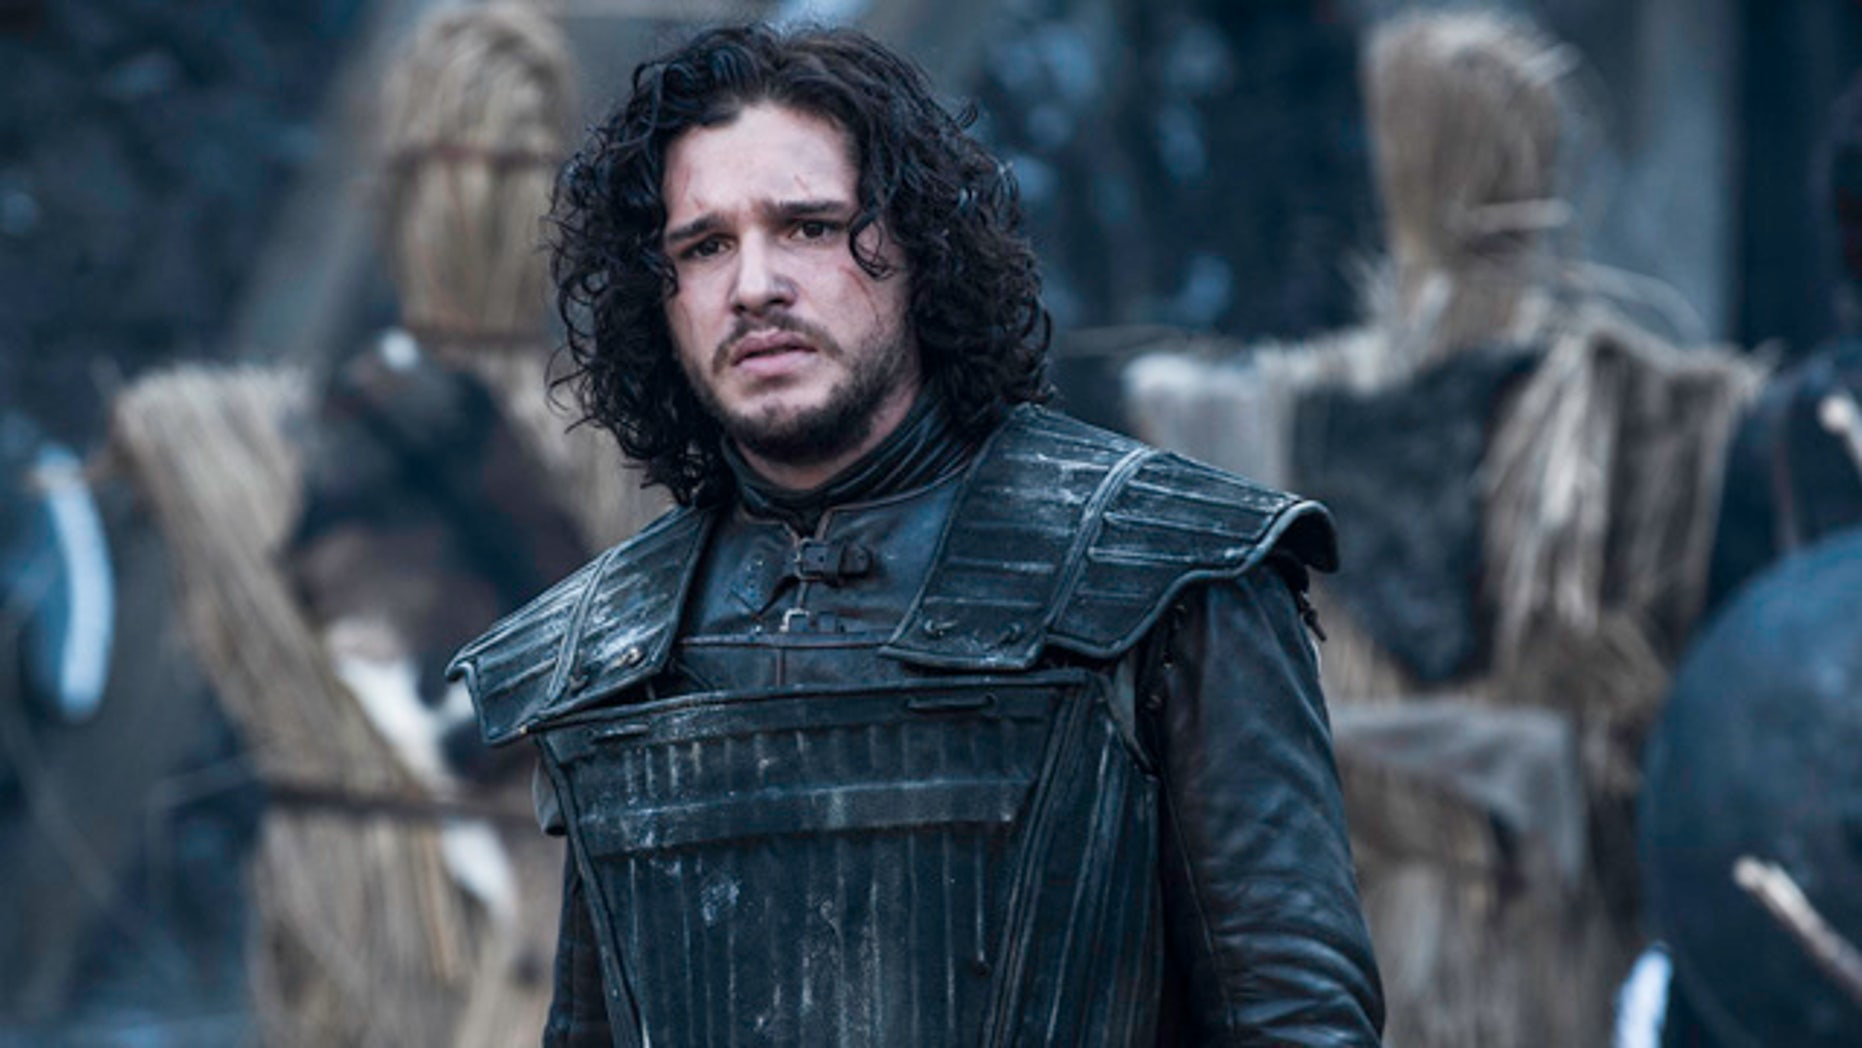 Jon Snow (played by Kit Harrington) of 'Game of Thrones' (Courtesy HBO)